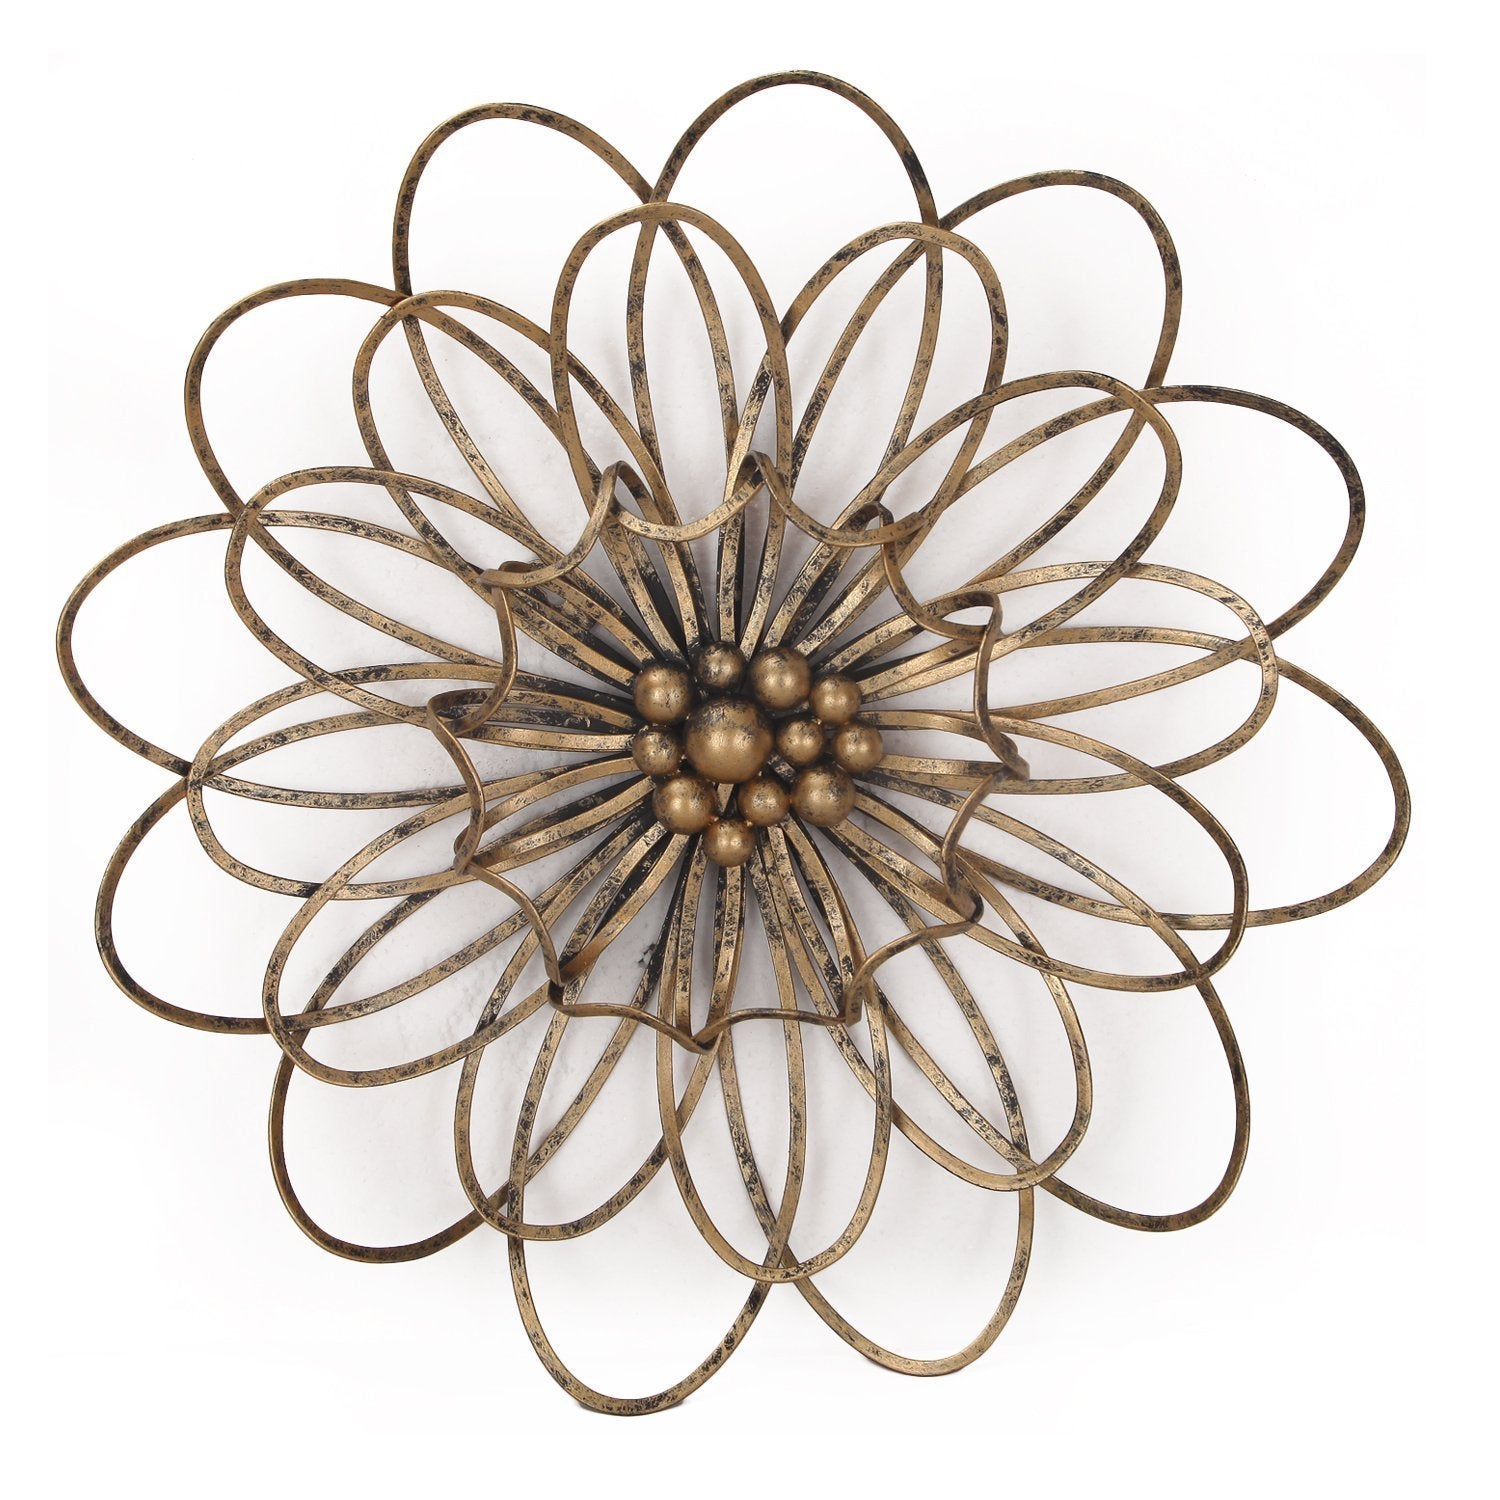 Shop Flower Urban Design Metal Wall Decor – Free Shipping Today Inside Widely Used Flower Urban Design Metal Wall Decor (Gallery 3 of 20)